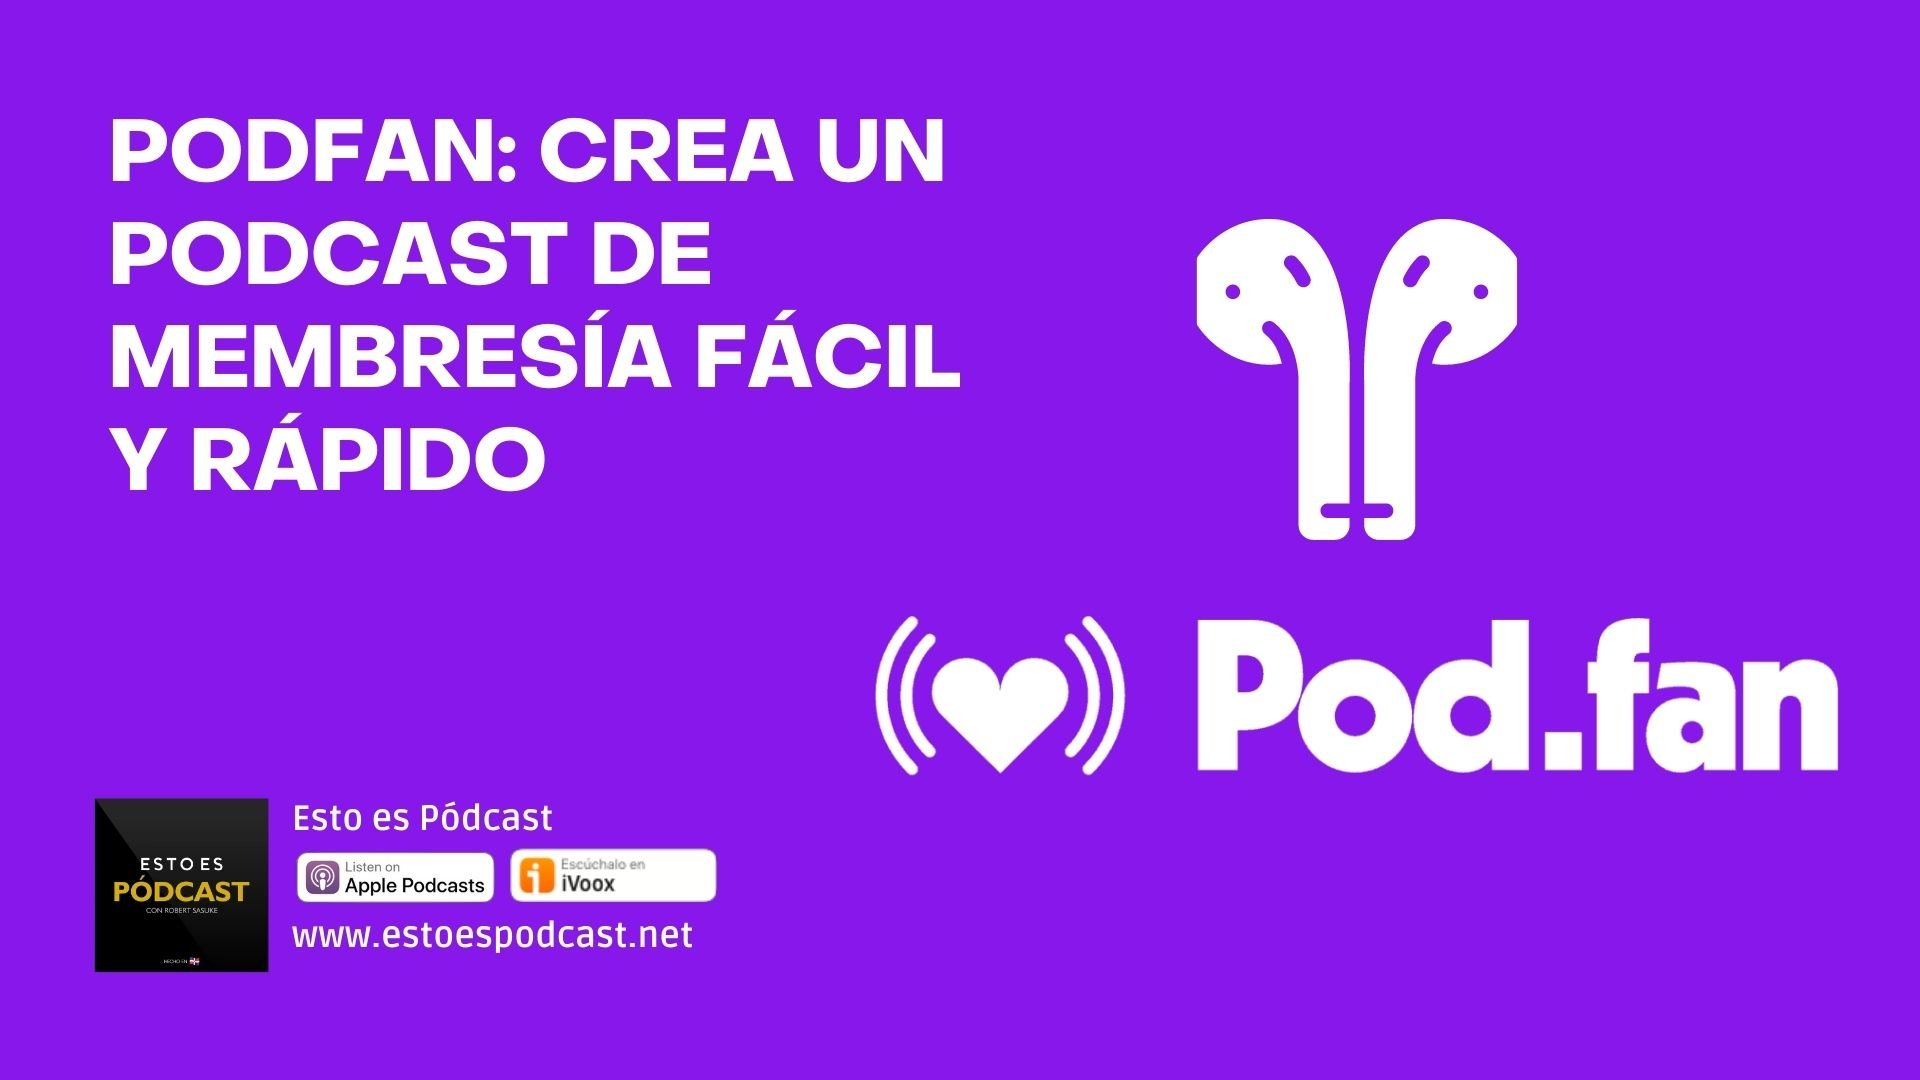 Pod.Fan: Crea un podcast con membresía